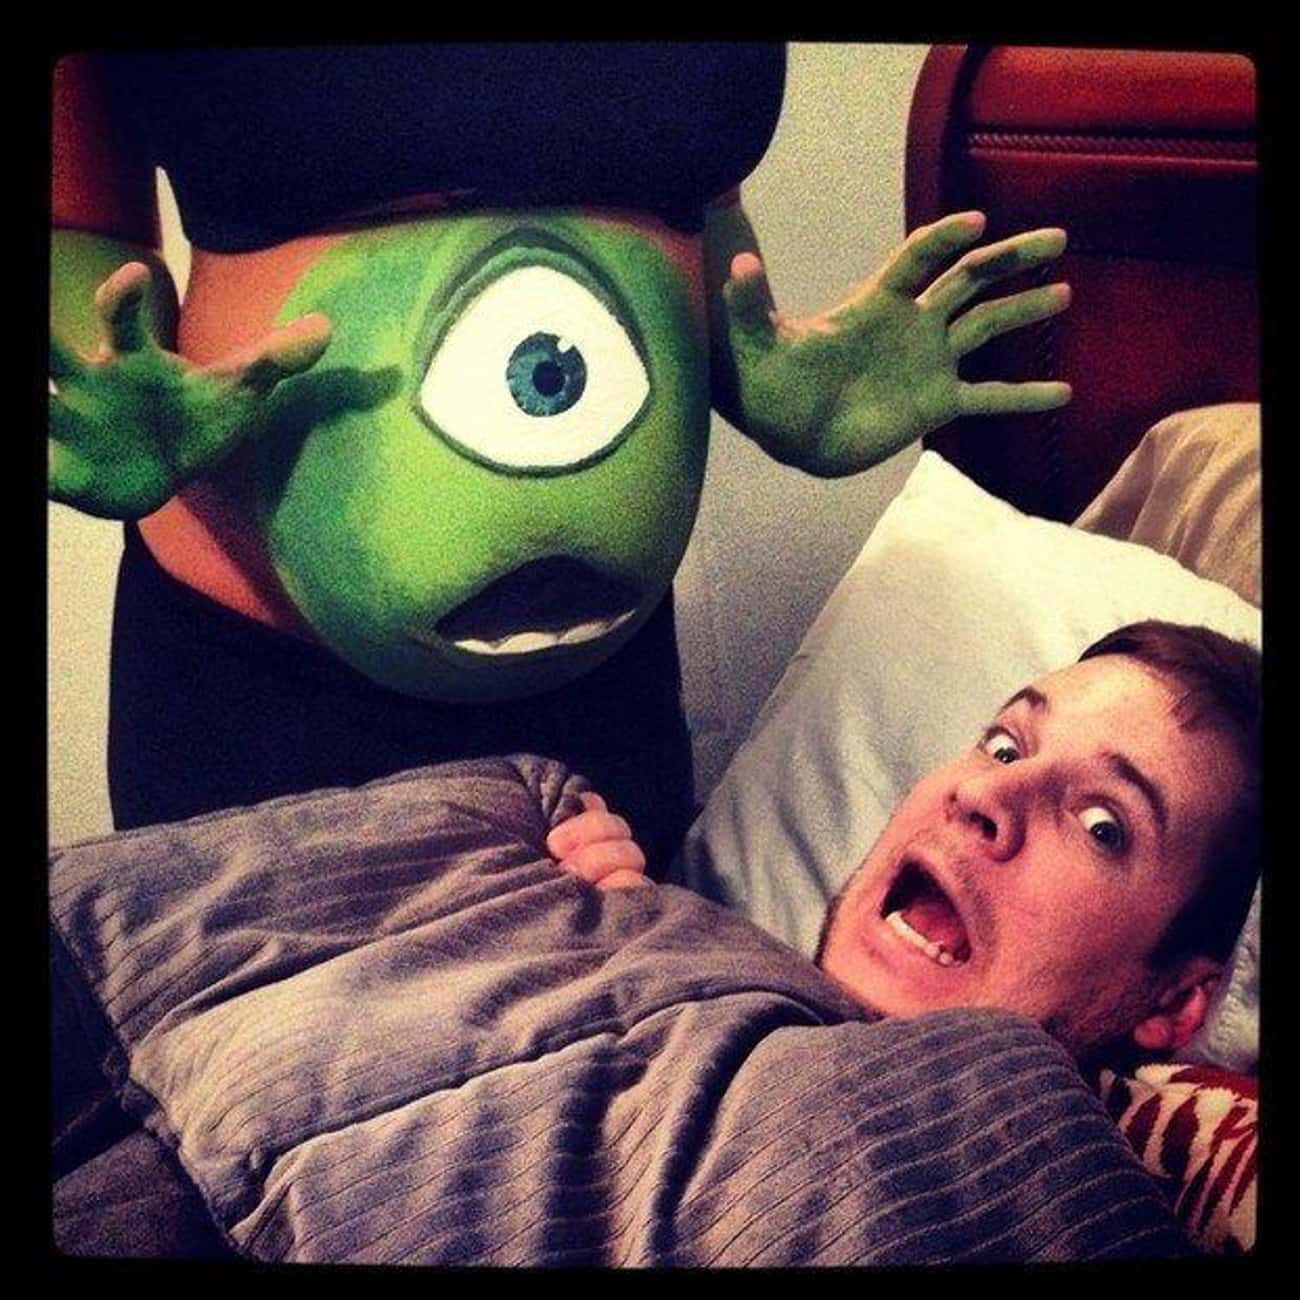 Mike Wazowski! is listed (or ranked) 4 on the list 23 Funny Halloween Costumes for Pregnant Women That Are Super Clever